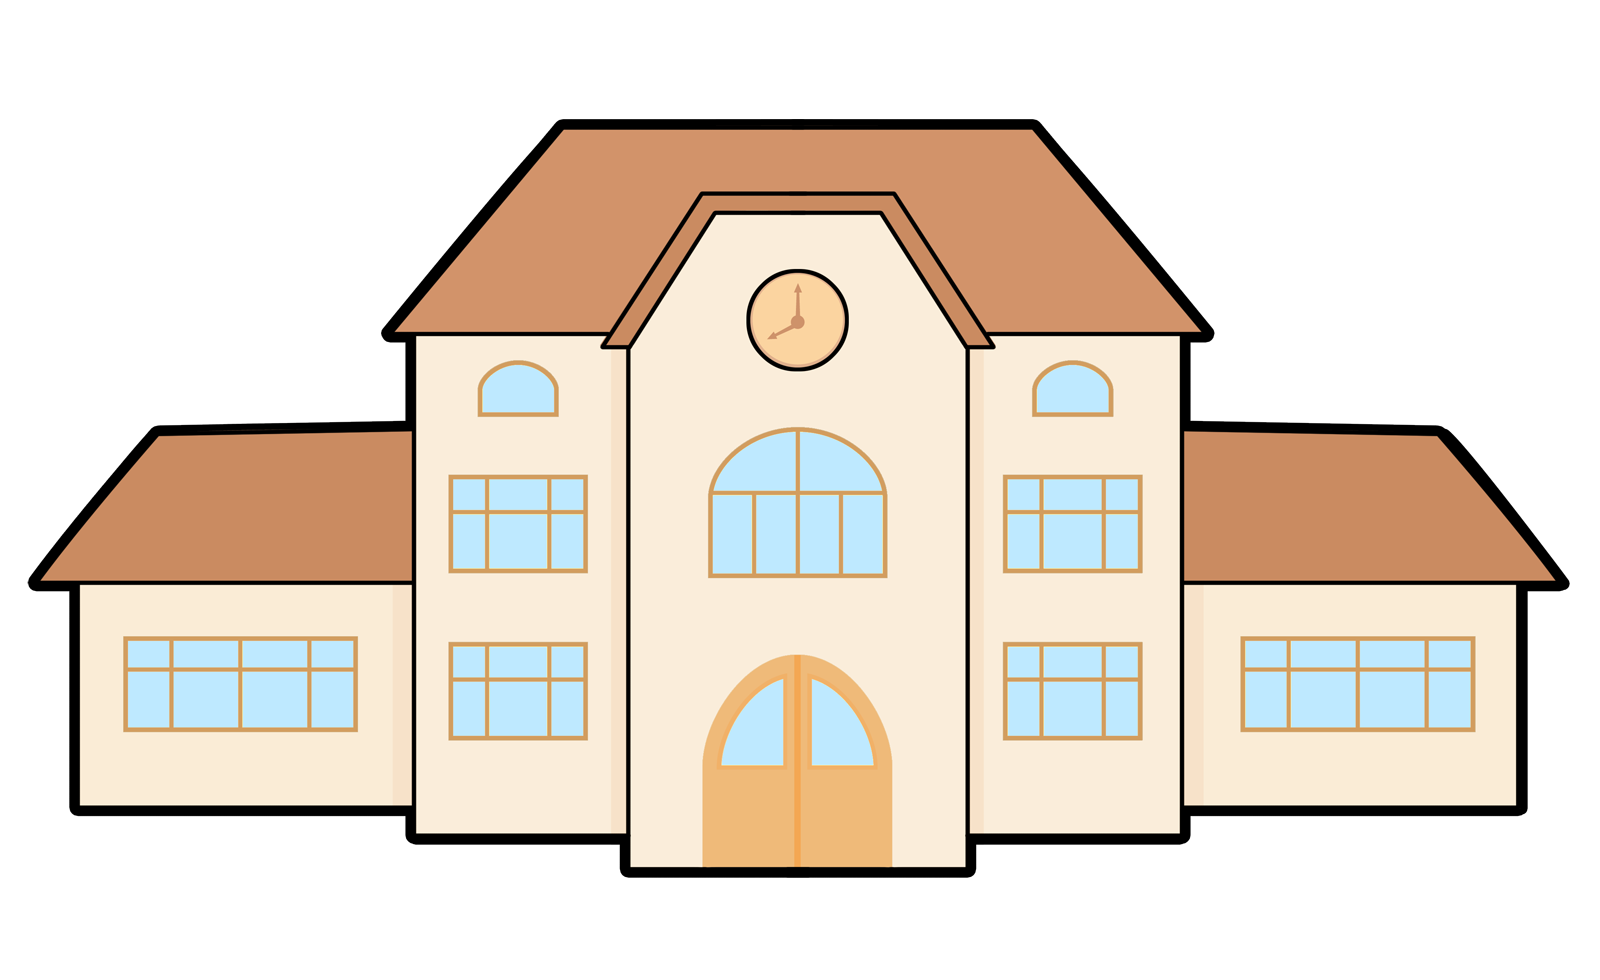 1600x980 You Can Use This Clip Art A Village Farm On Whatever Project